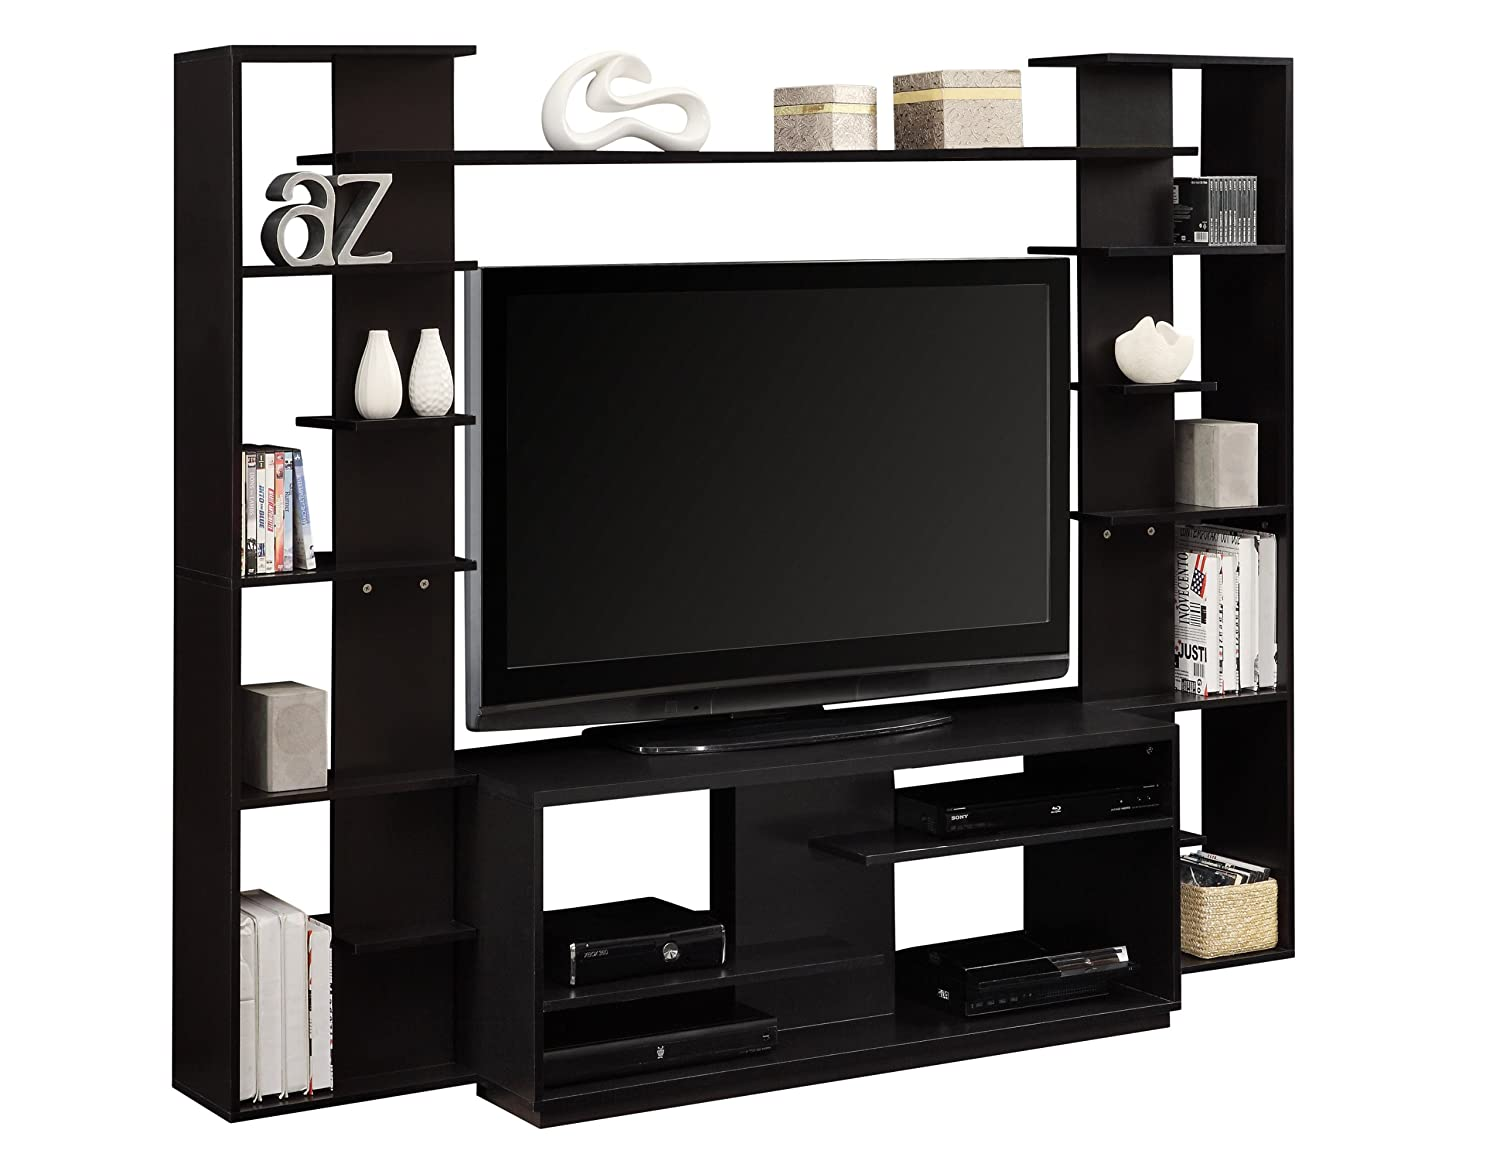 Merveilleux Amazon.com: Altra Watson Home Entertainment Center With Reversible Back  Panels, Black: Kitchen U0026 Dining